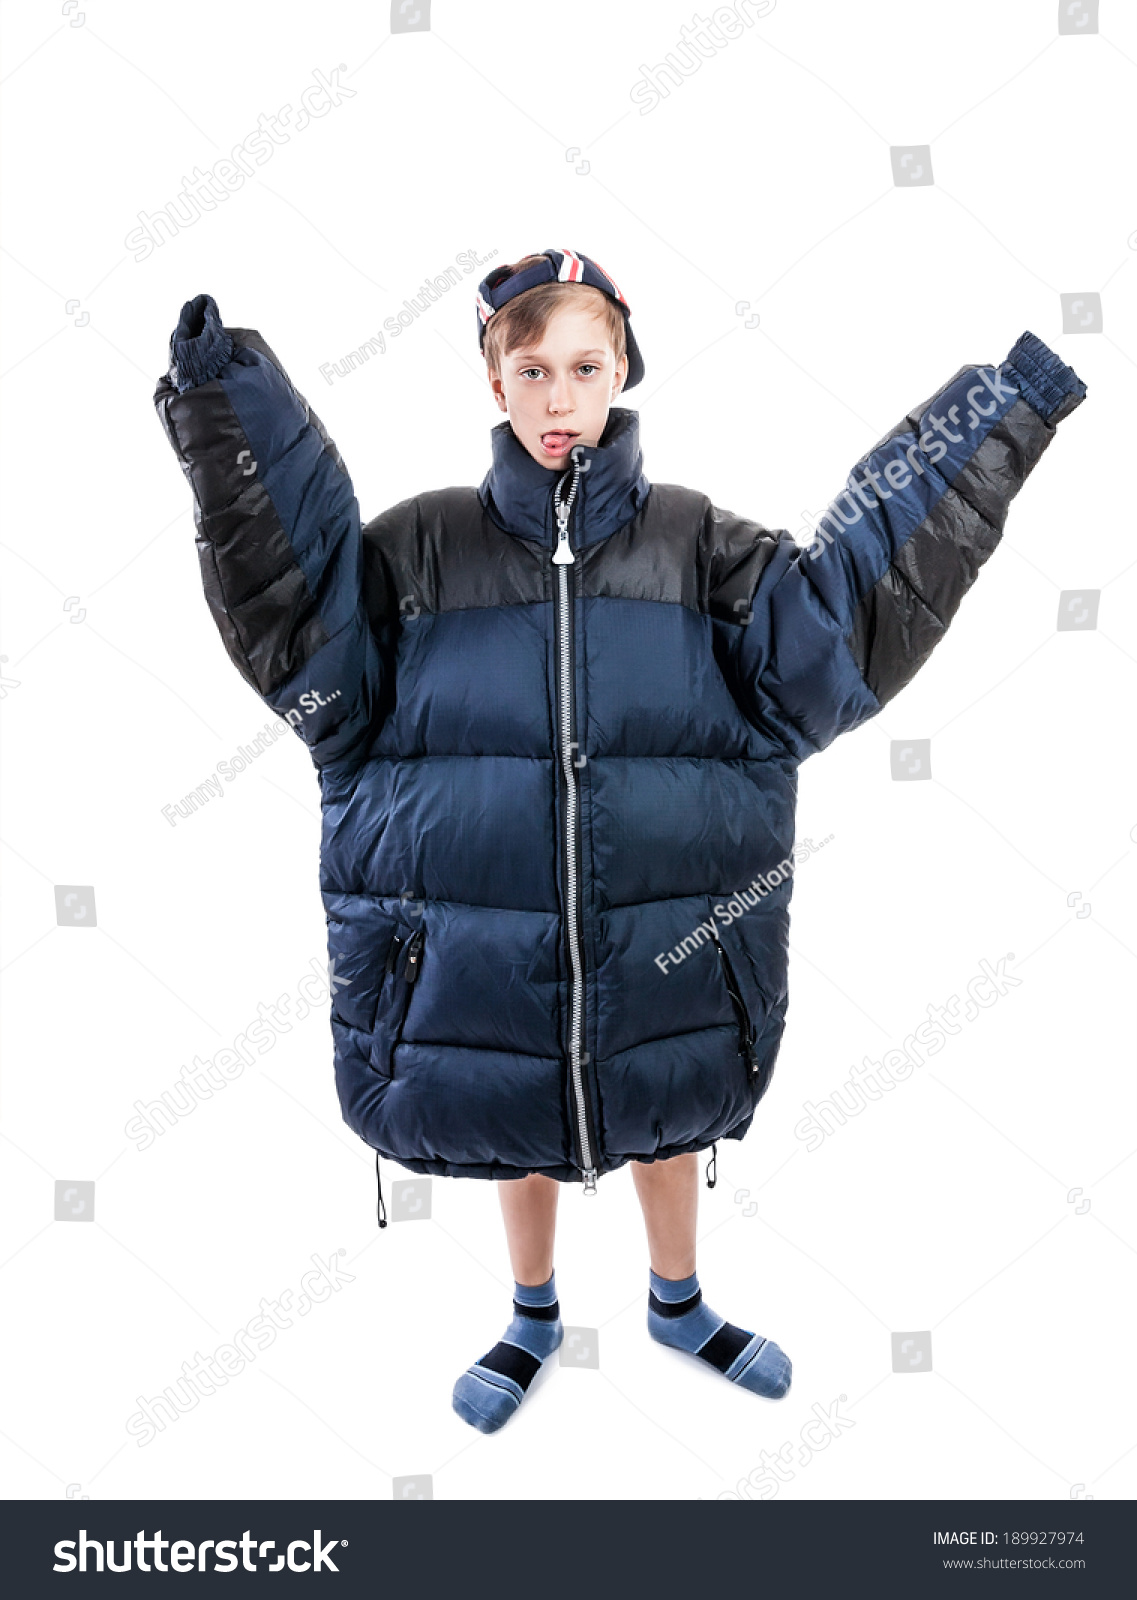 Big Winter Jacket OyNtGb